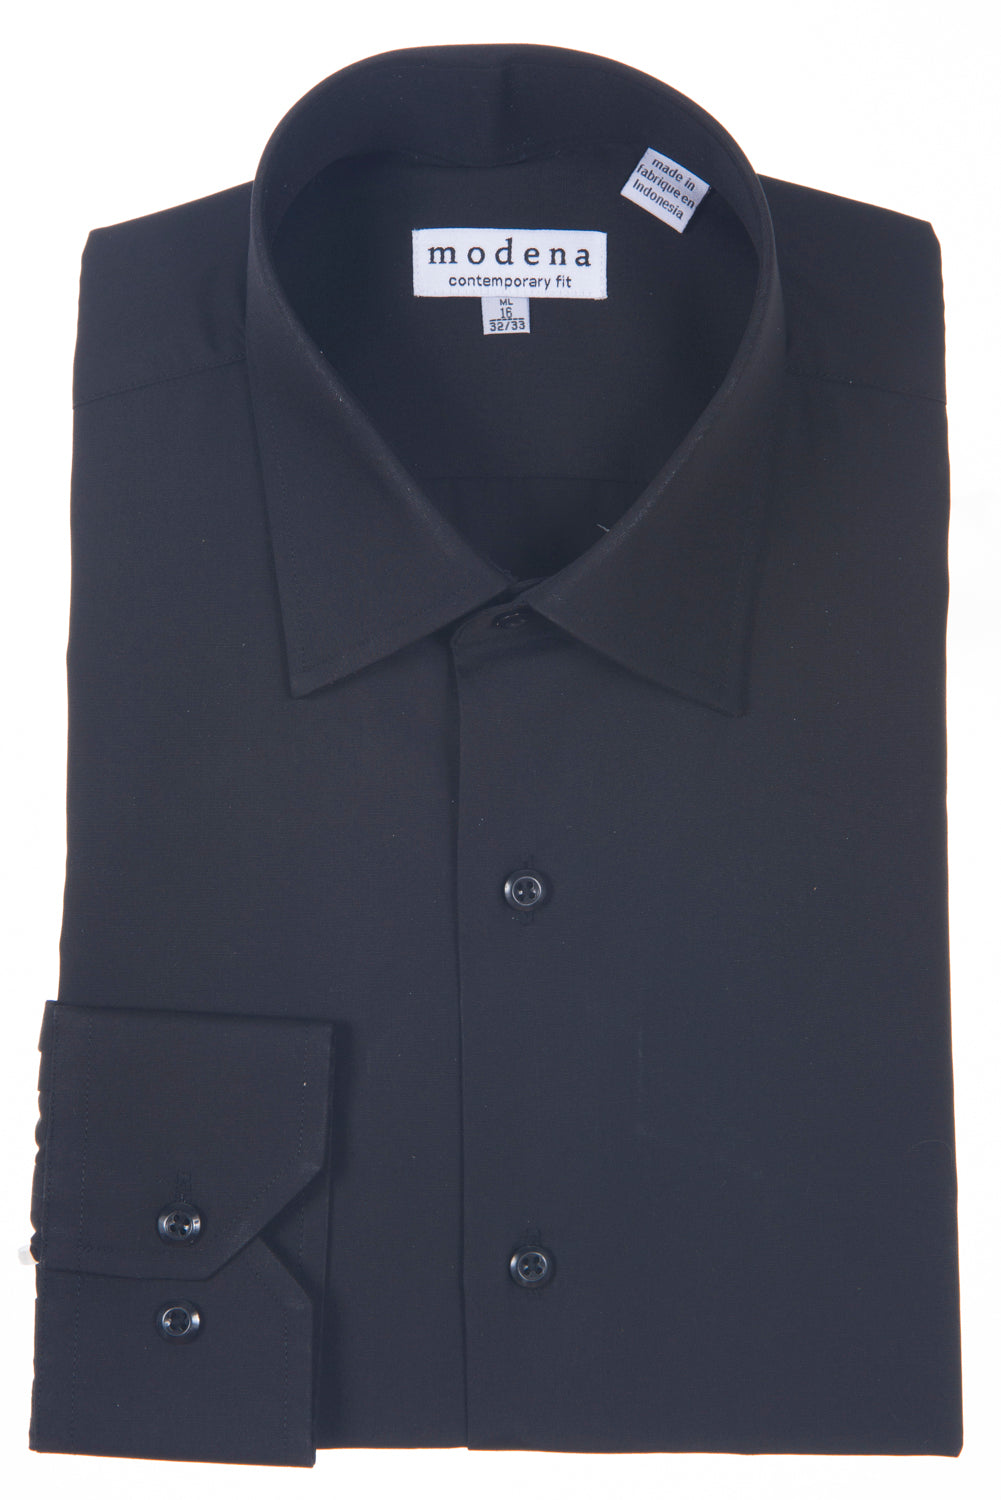 Modena - Black - Solid - Cotton Blend - Dress Shirt - Contemporary Fit.